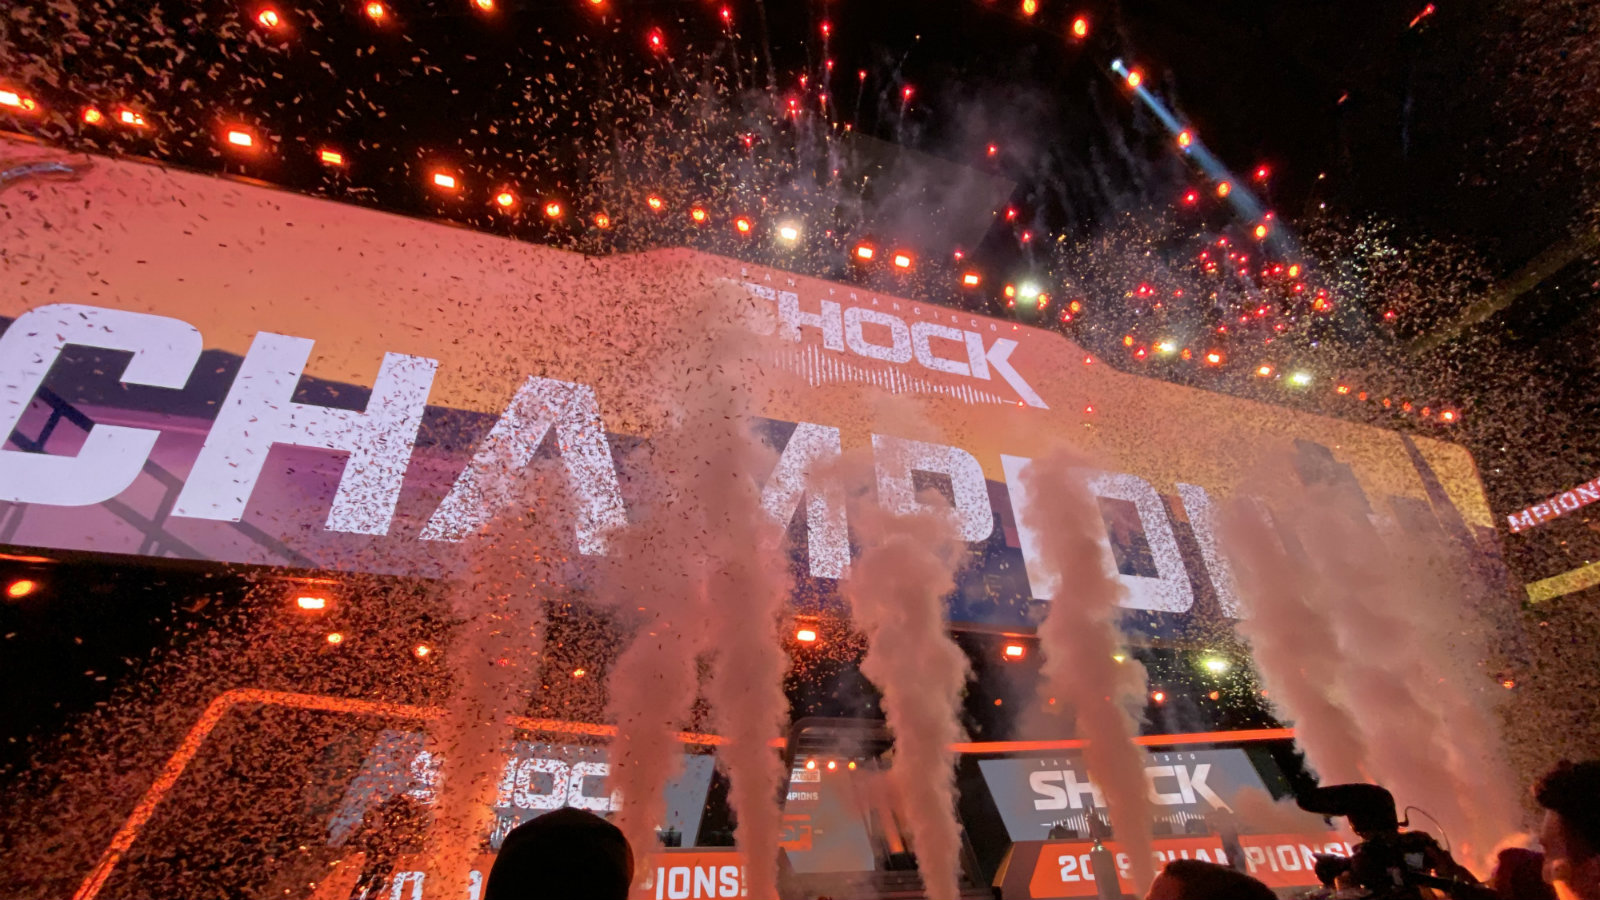 Shock win their first OWL championship